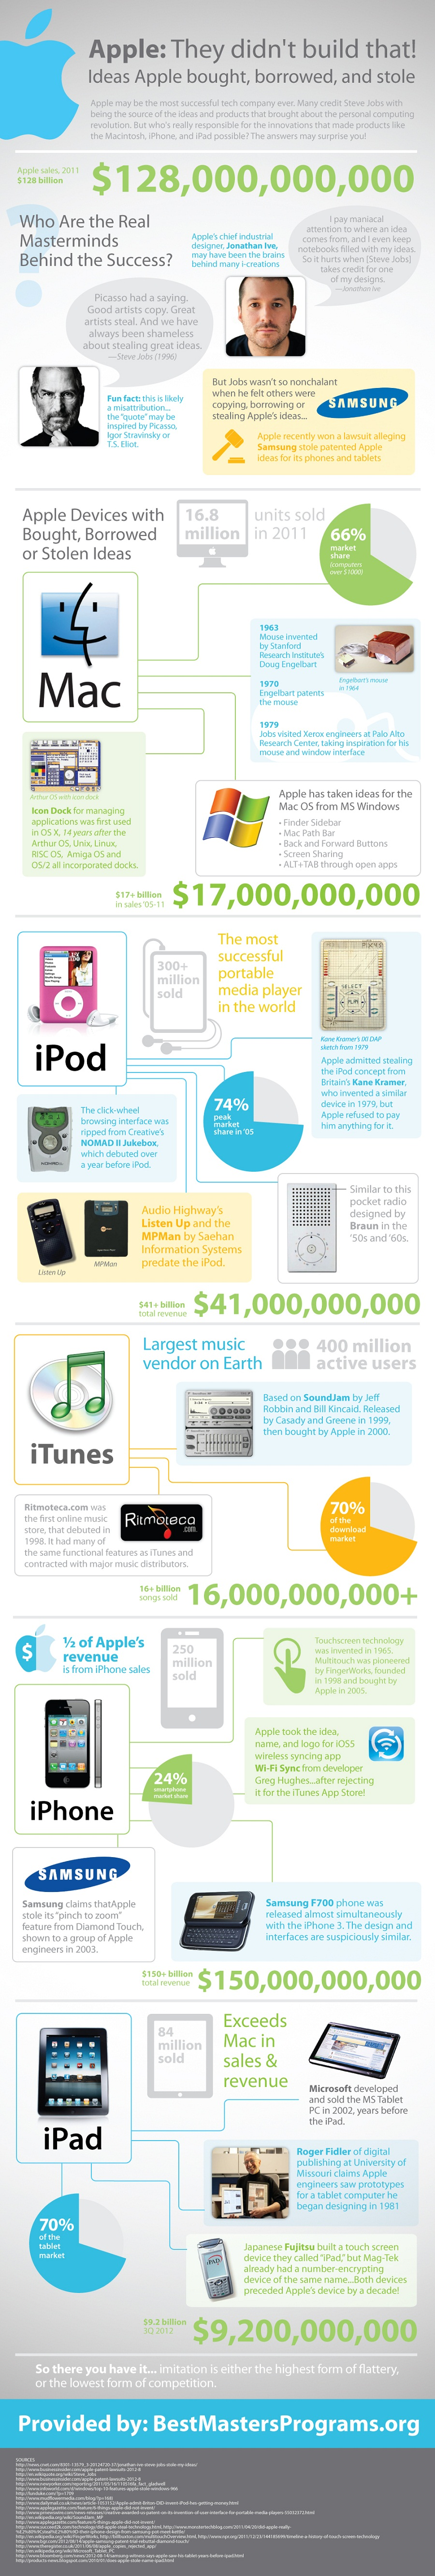 stole_ideas_by_apple_infographic